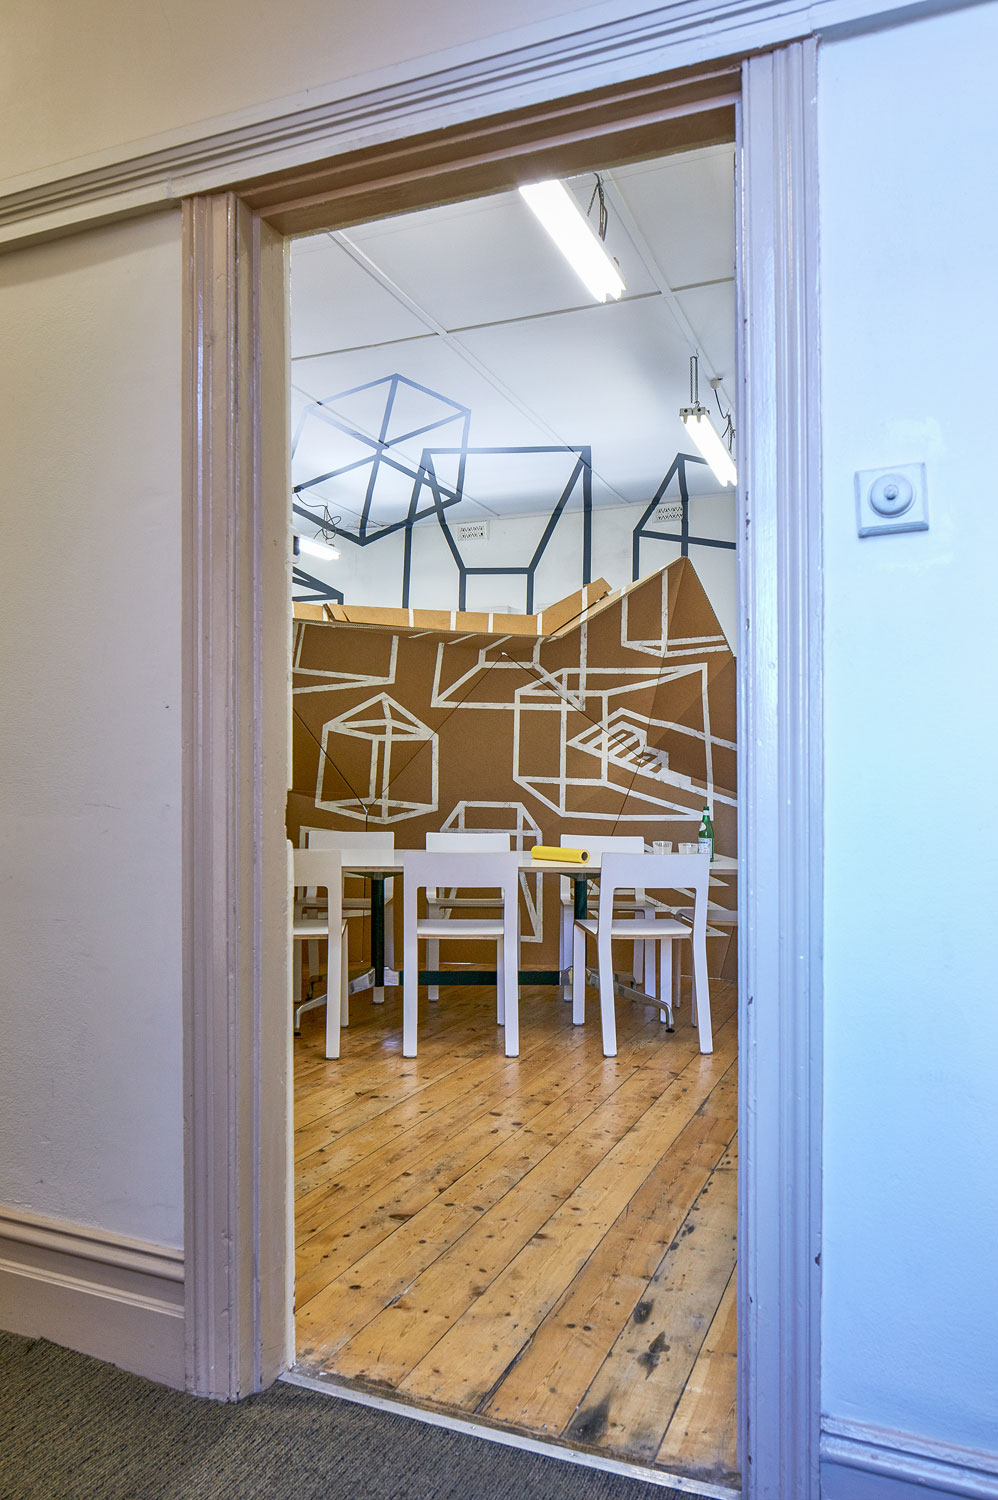 studio-thing-interior-design-by-warc-studio-melbourne-08.jpg